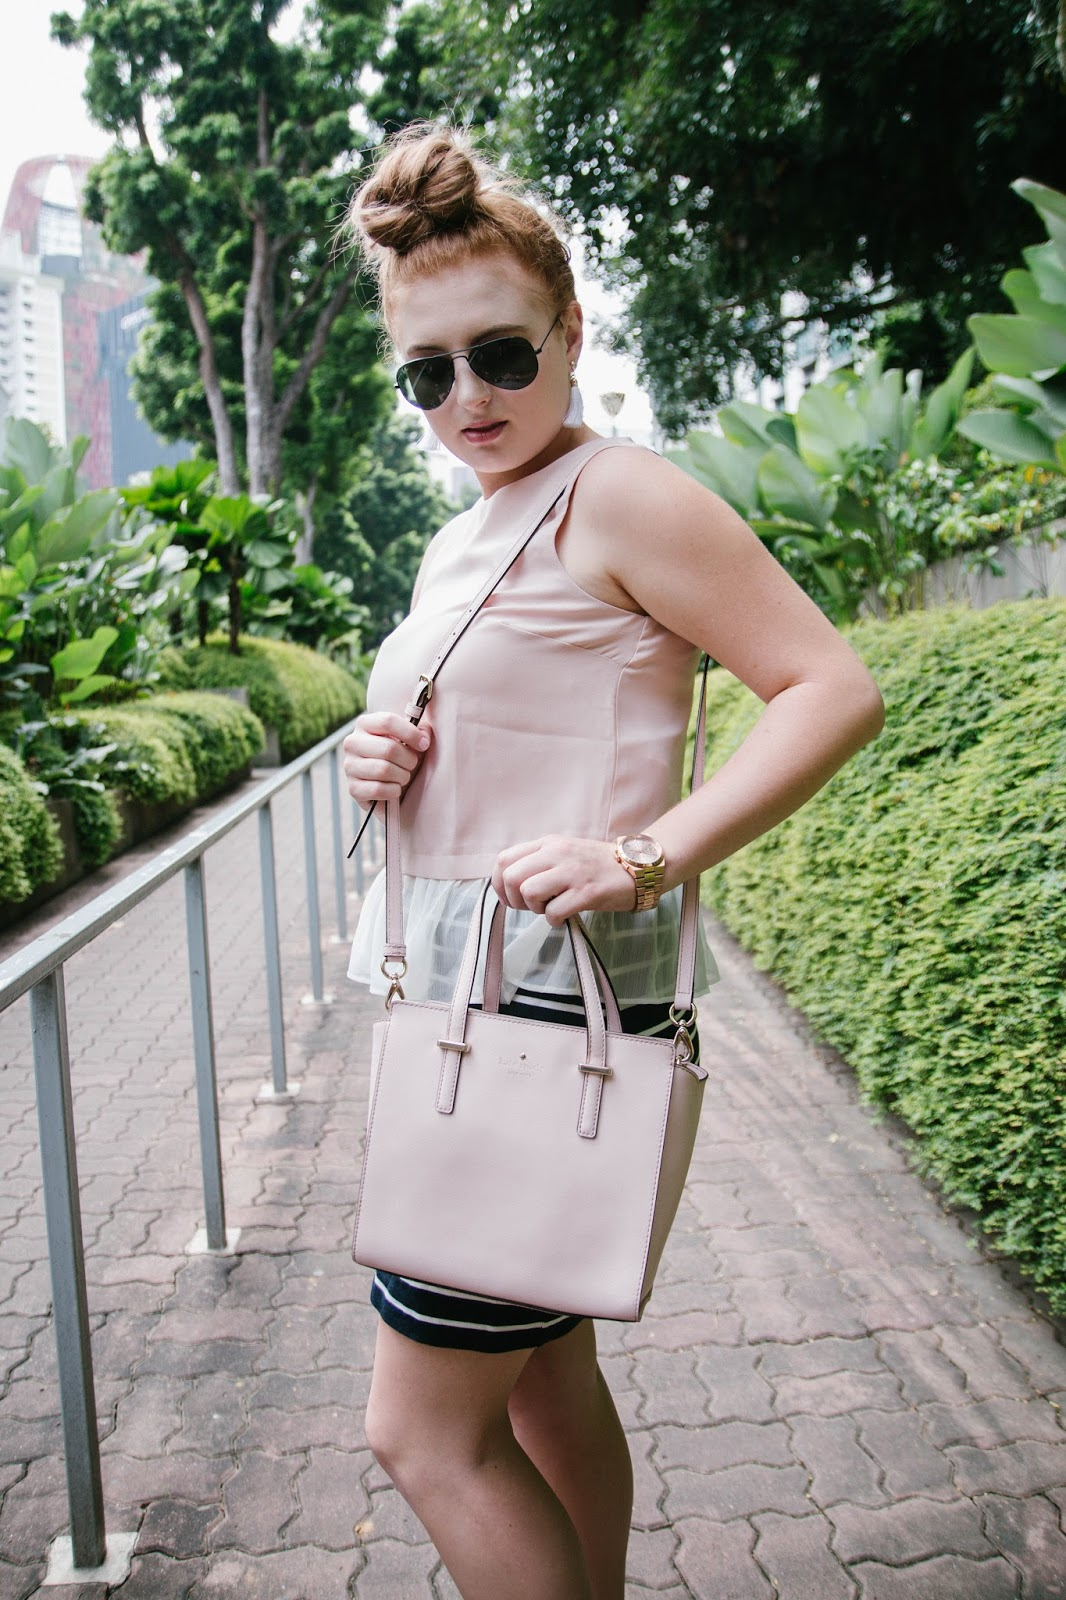 Asos Pink Peplum top for Valentine's Day in Singapore | GlobalFashionGal by Brianna Degaston